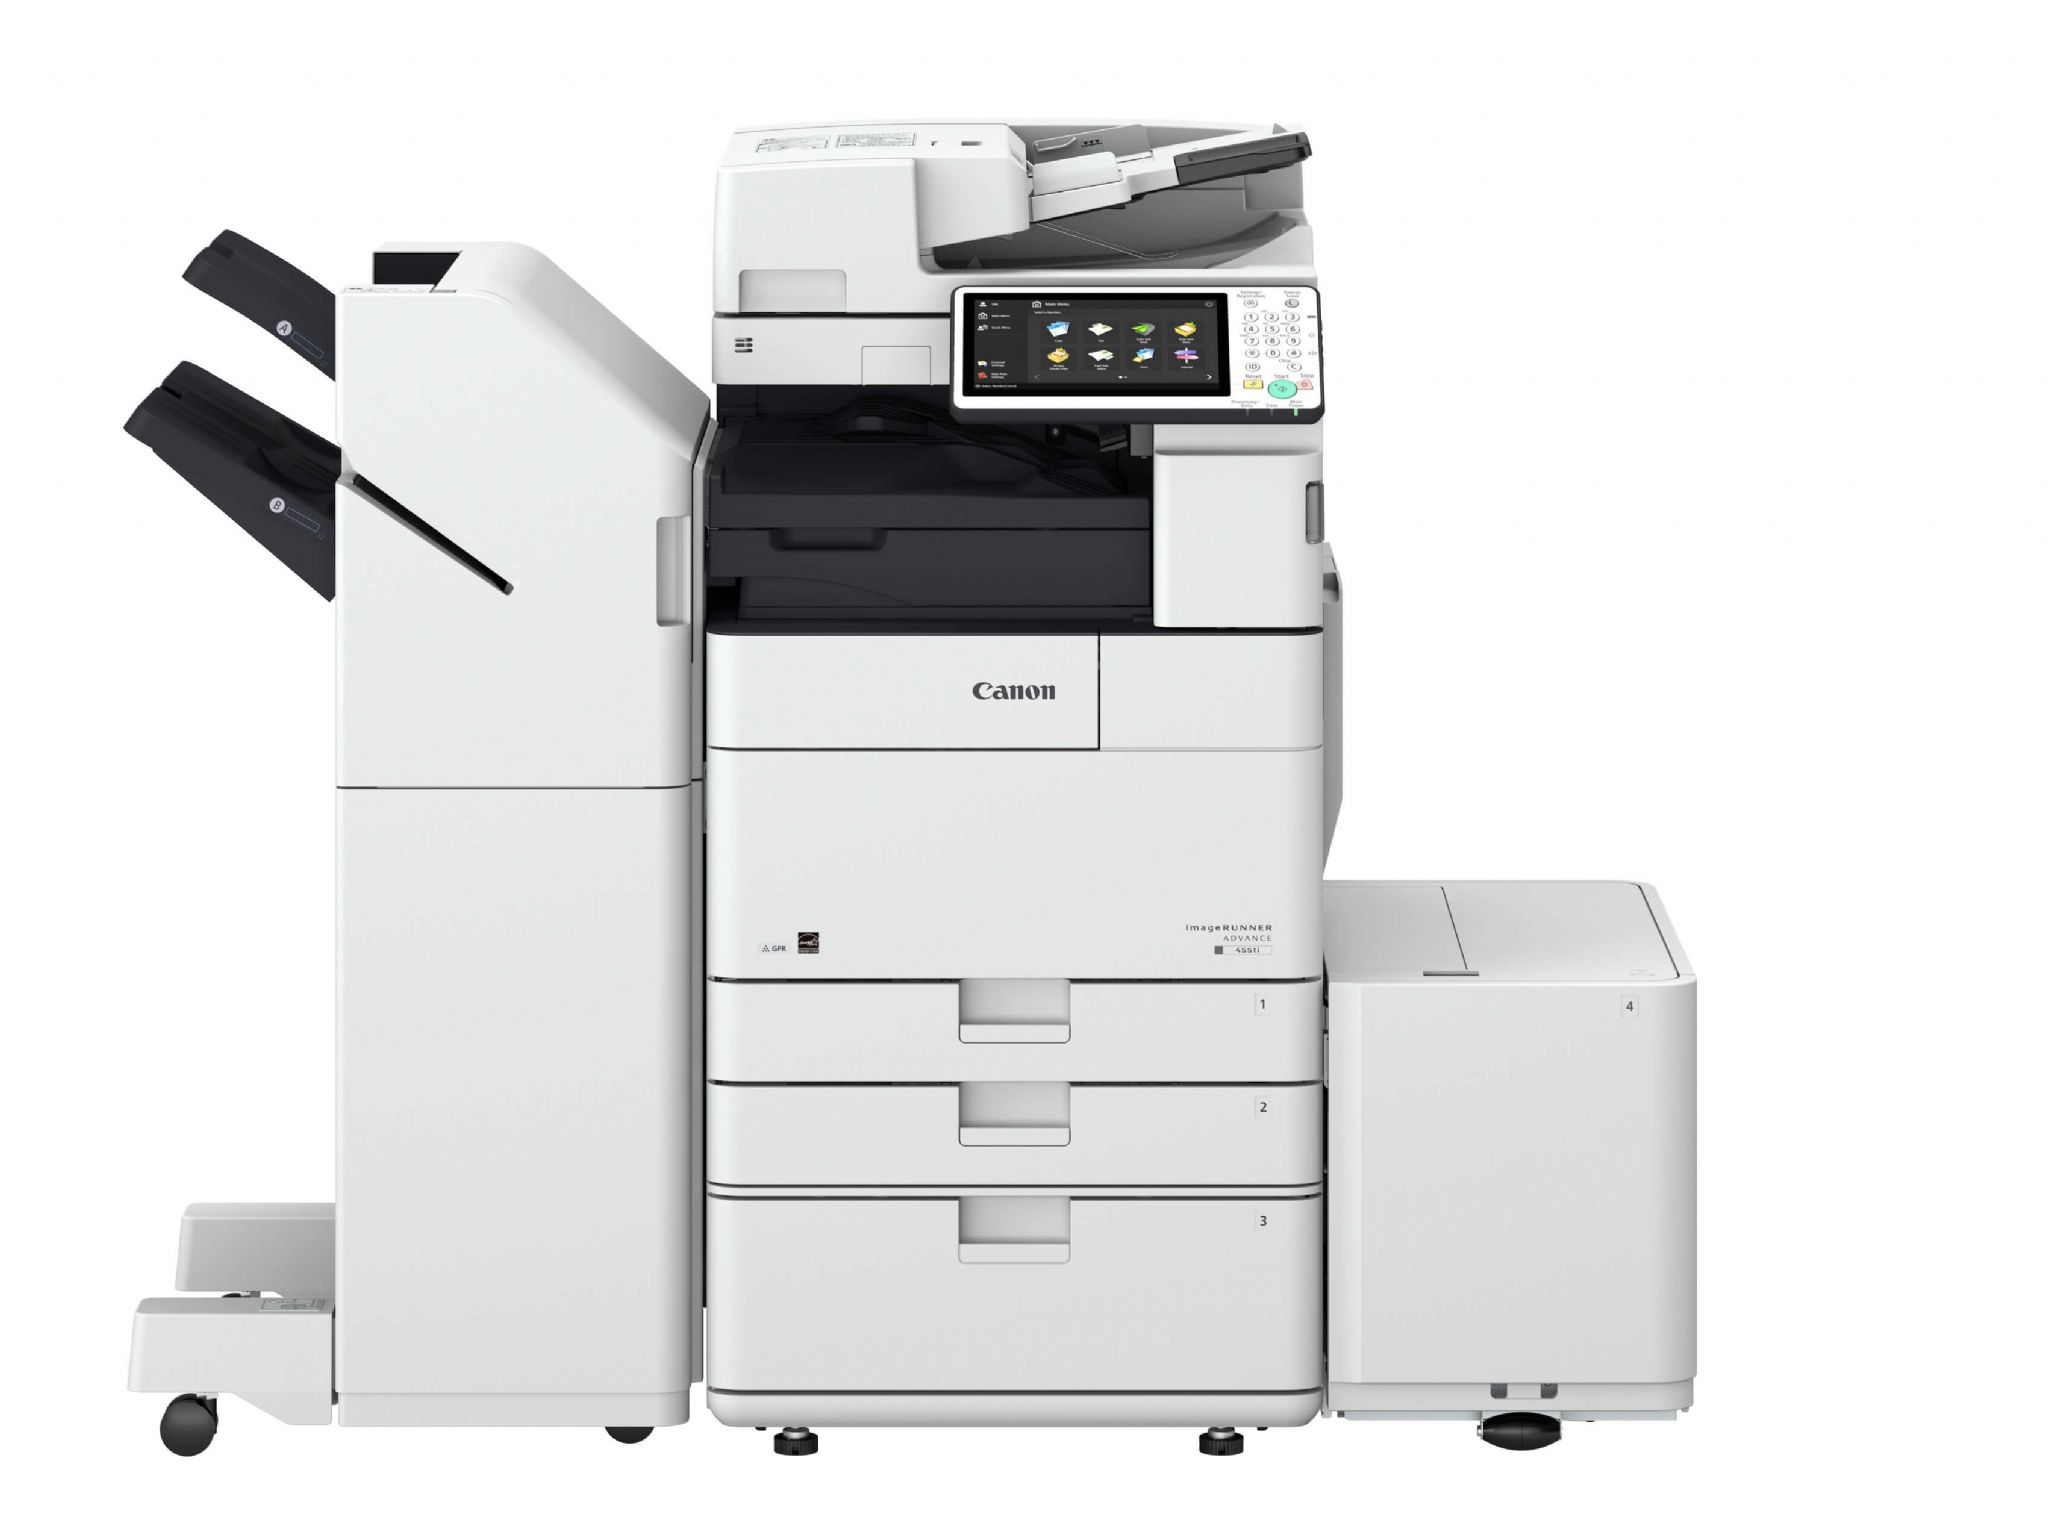 Canon imagerunner advance 4500 finisher